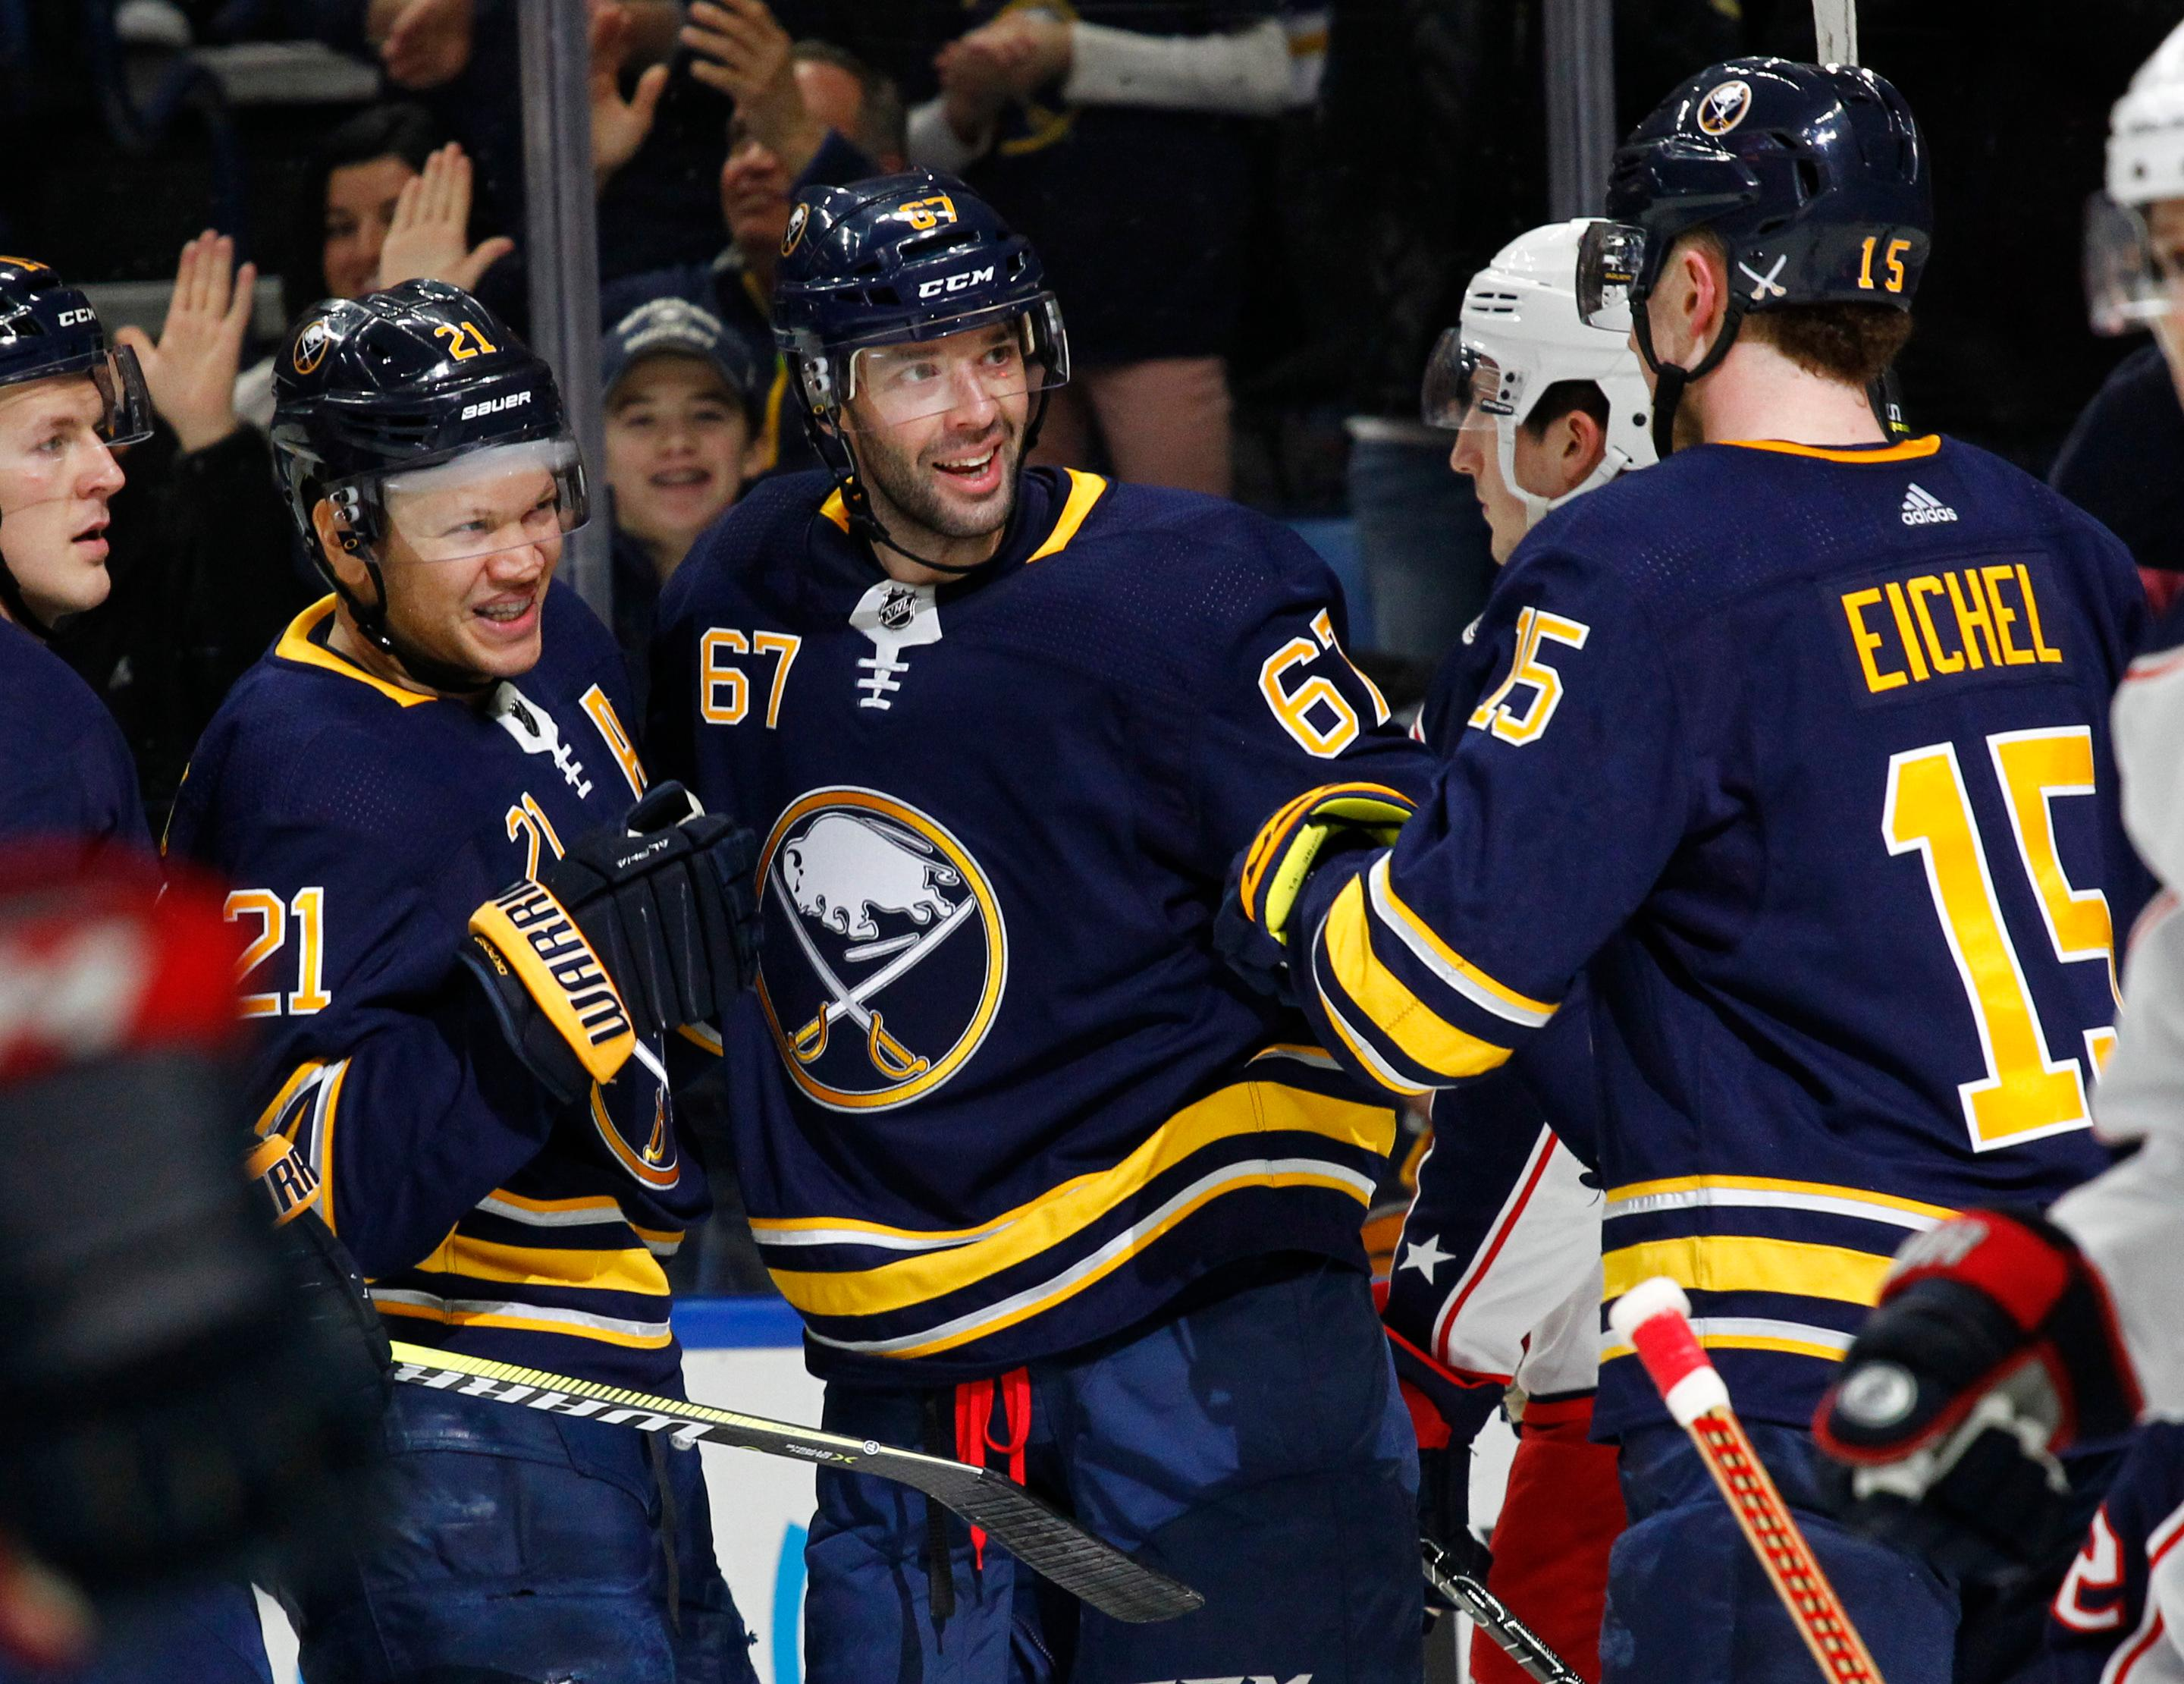 Buffalo Sabres' Kyle Okposo (21) and Benoit Pouliot (67) celebrate a goal during the first period of an NHL hockey game against the Columbus Blue Jackets on Thursday, Jan. 11, 2018, in Buffalo, N.Y. (AP Photo/Jeffrey T. Barnes)